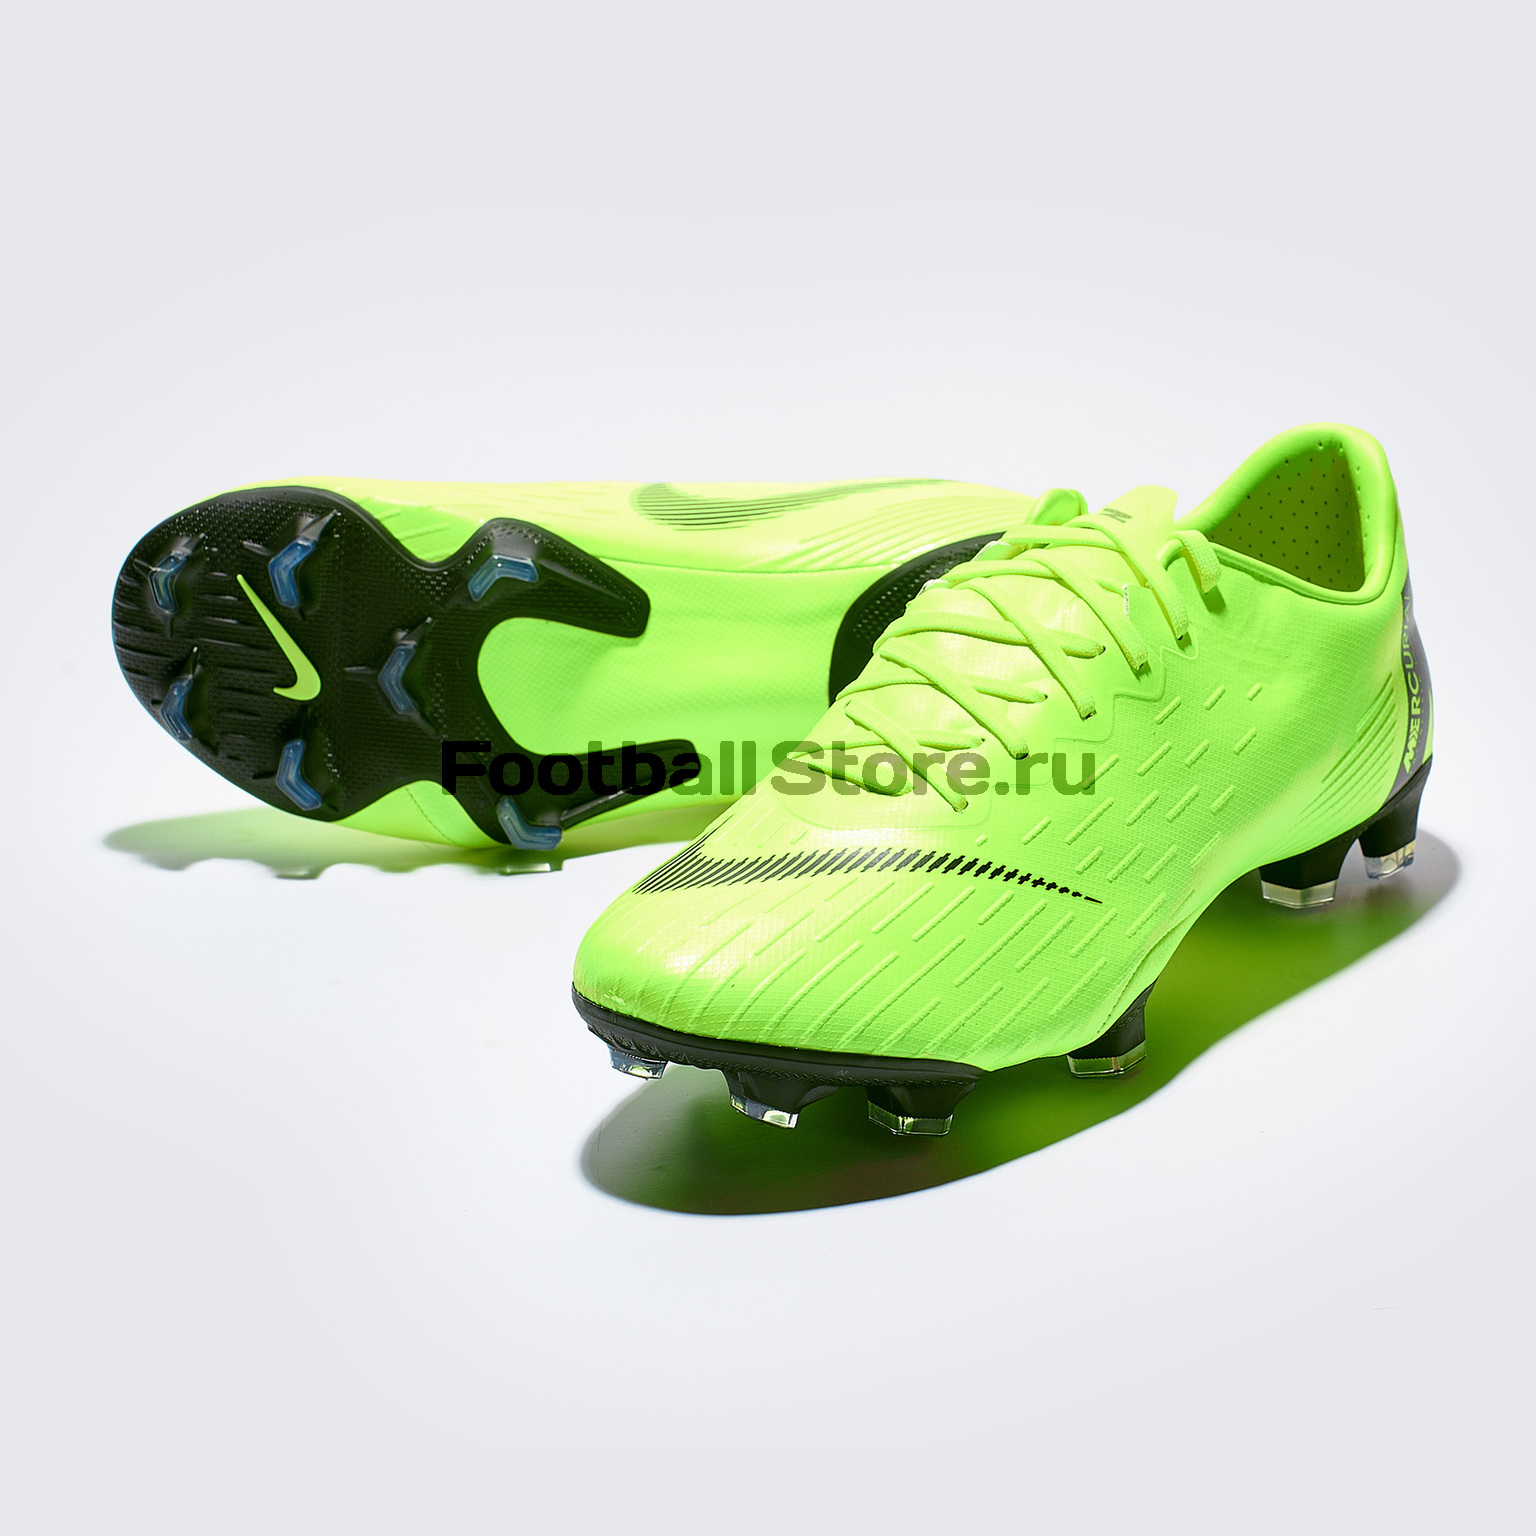 Бутсы Nike Vapor 12 Pro FG AH7382-701 nike vapor pro low d men s detachable football cleats